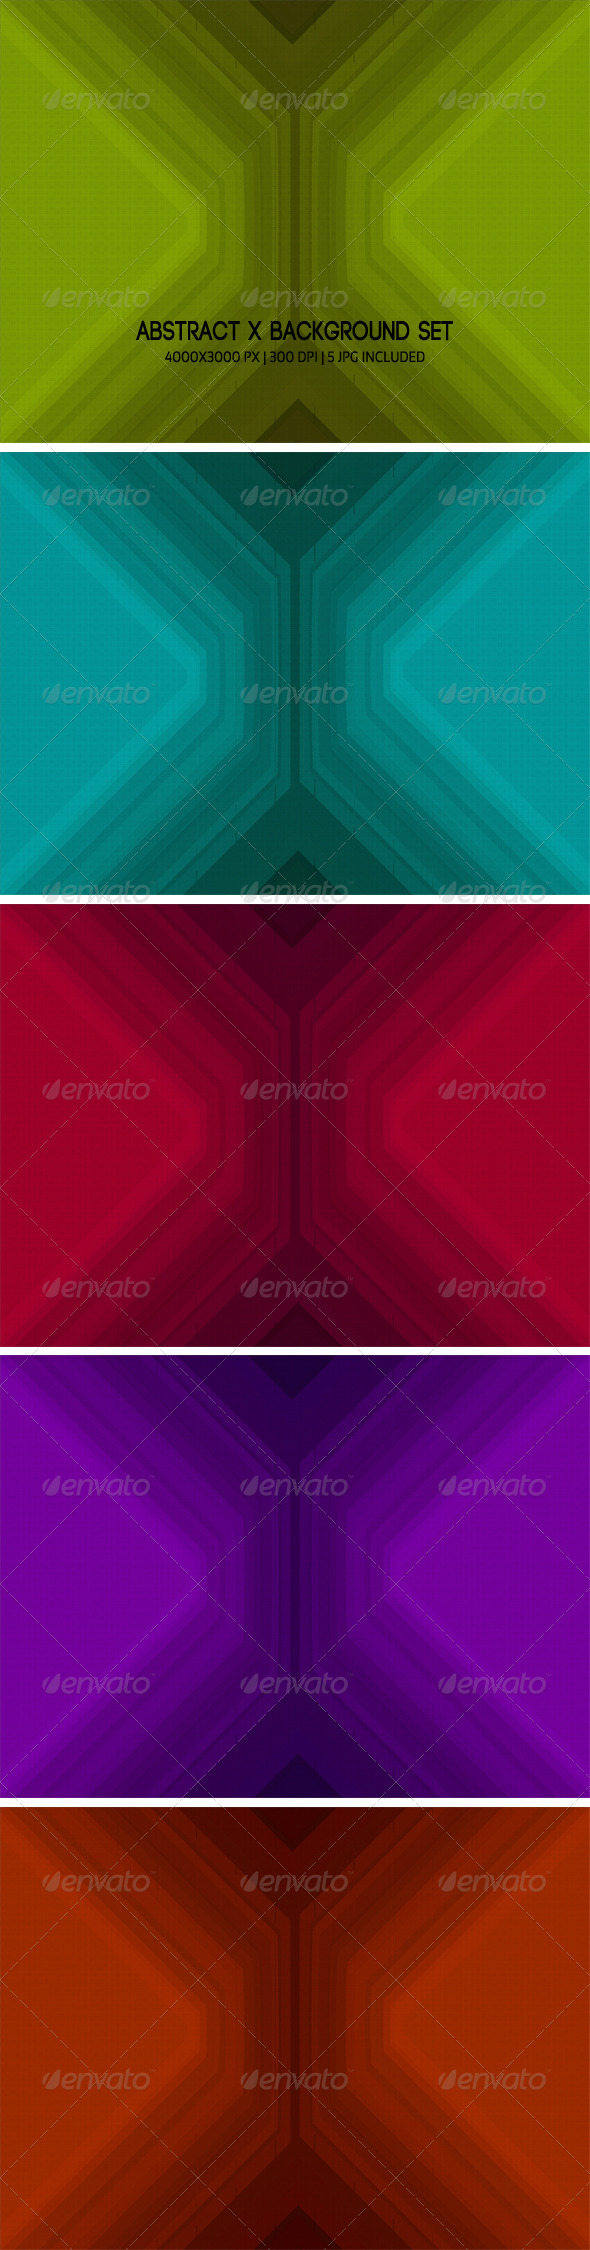 Abstract X Background Set - Backgrounds Graphics